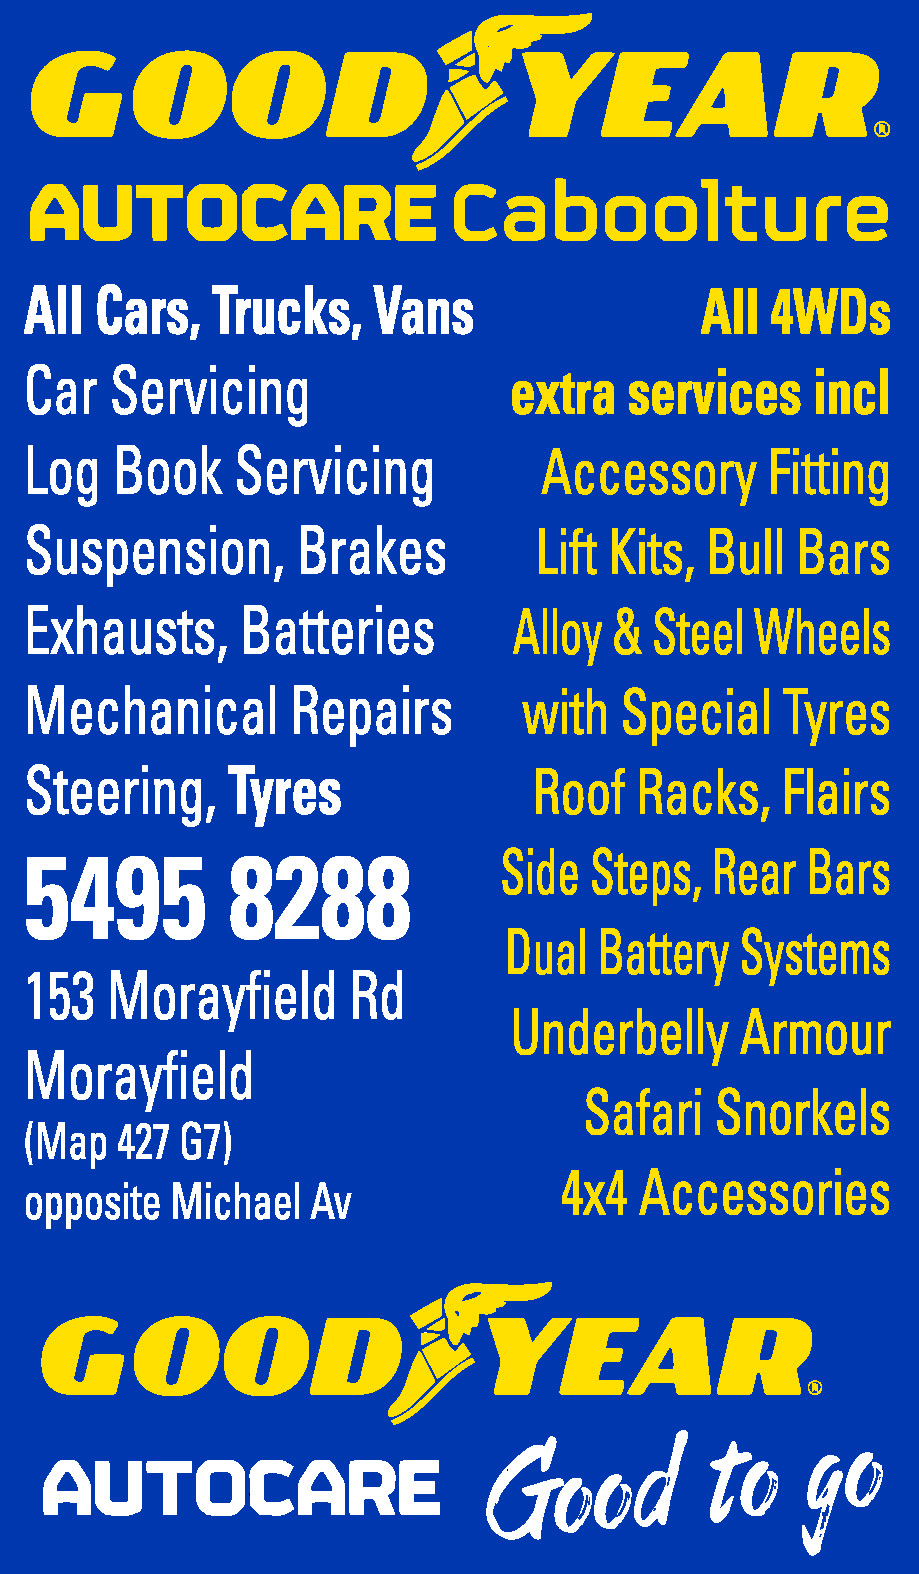 Goodyear Autocare Caboolture - Tyres